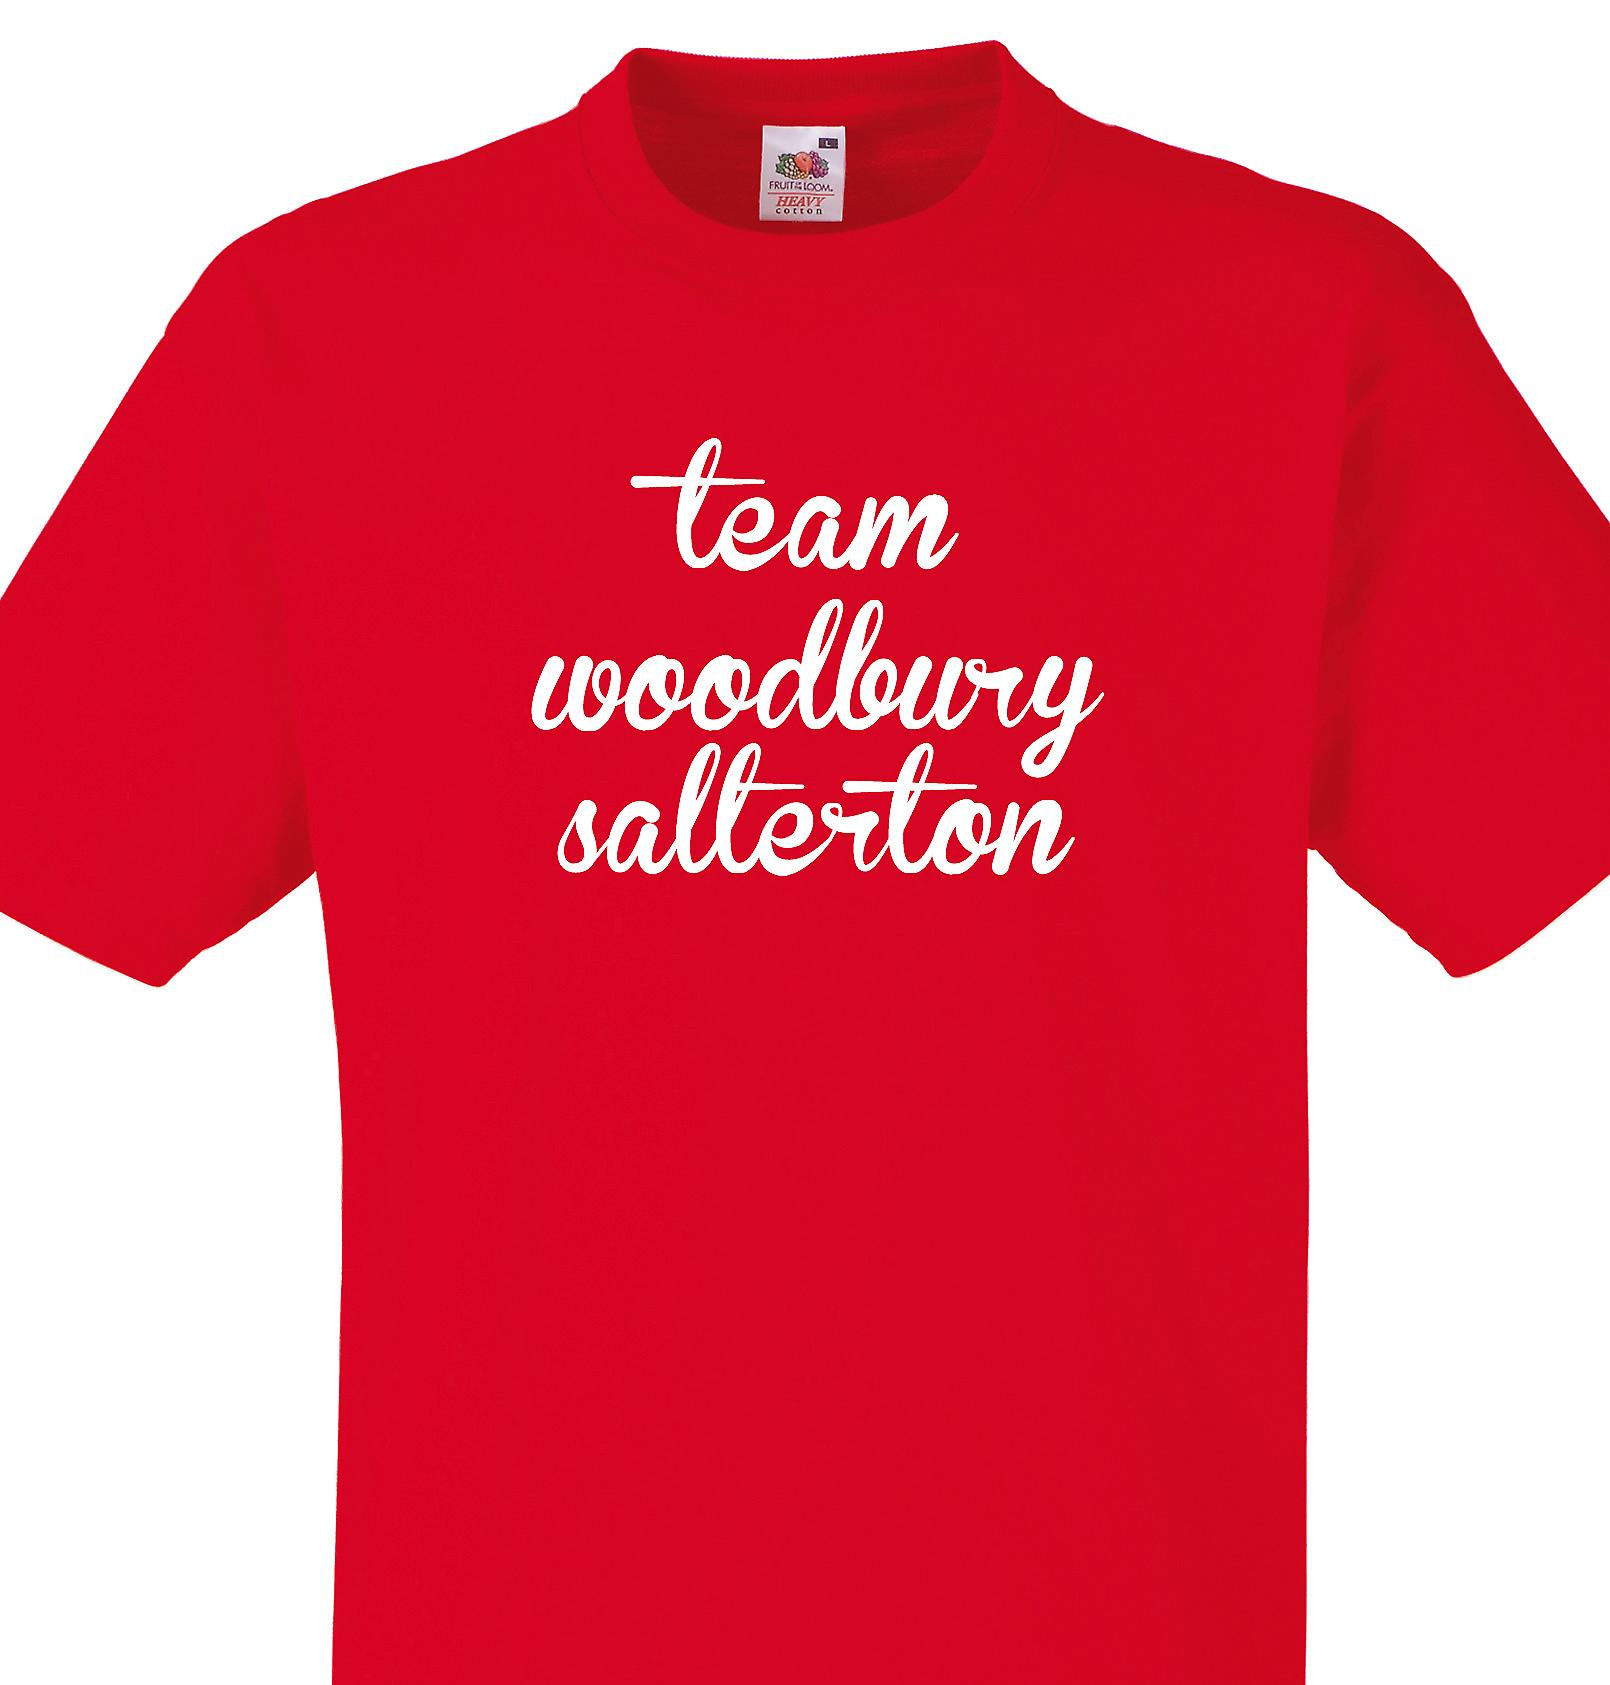 Team Woodbury salterton Red T shirt